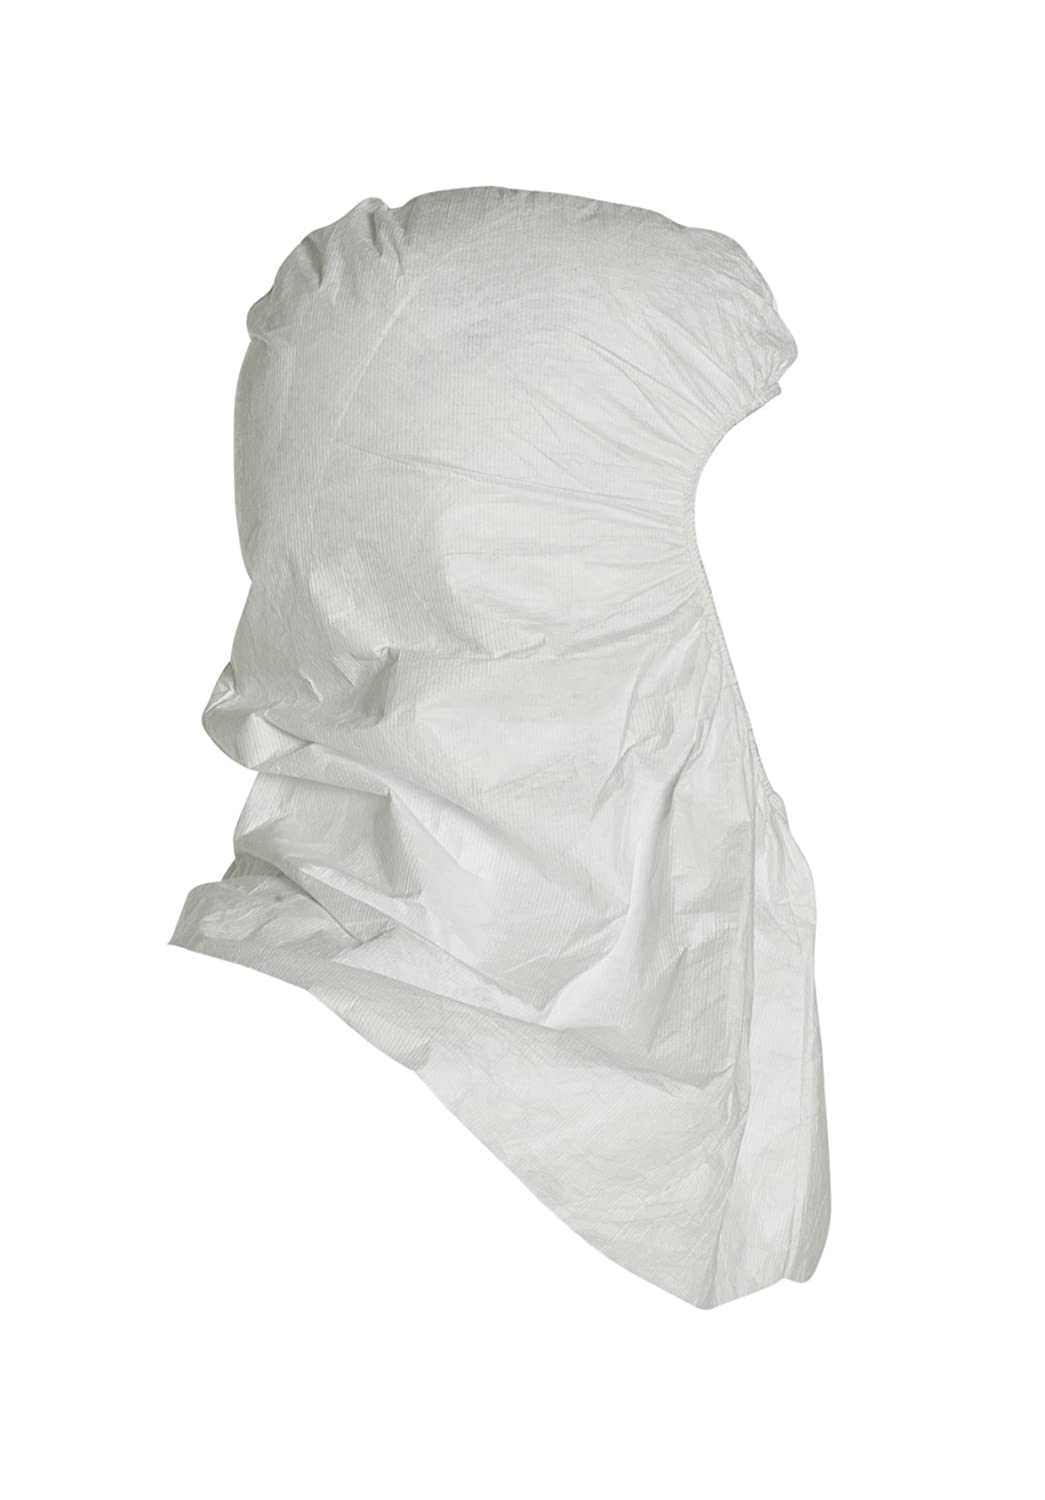 Pack of 100 TY657SWH00010000 DuPont Tyvek TY657S Pullover Hood Universal Size White